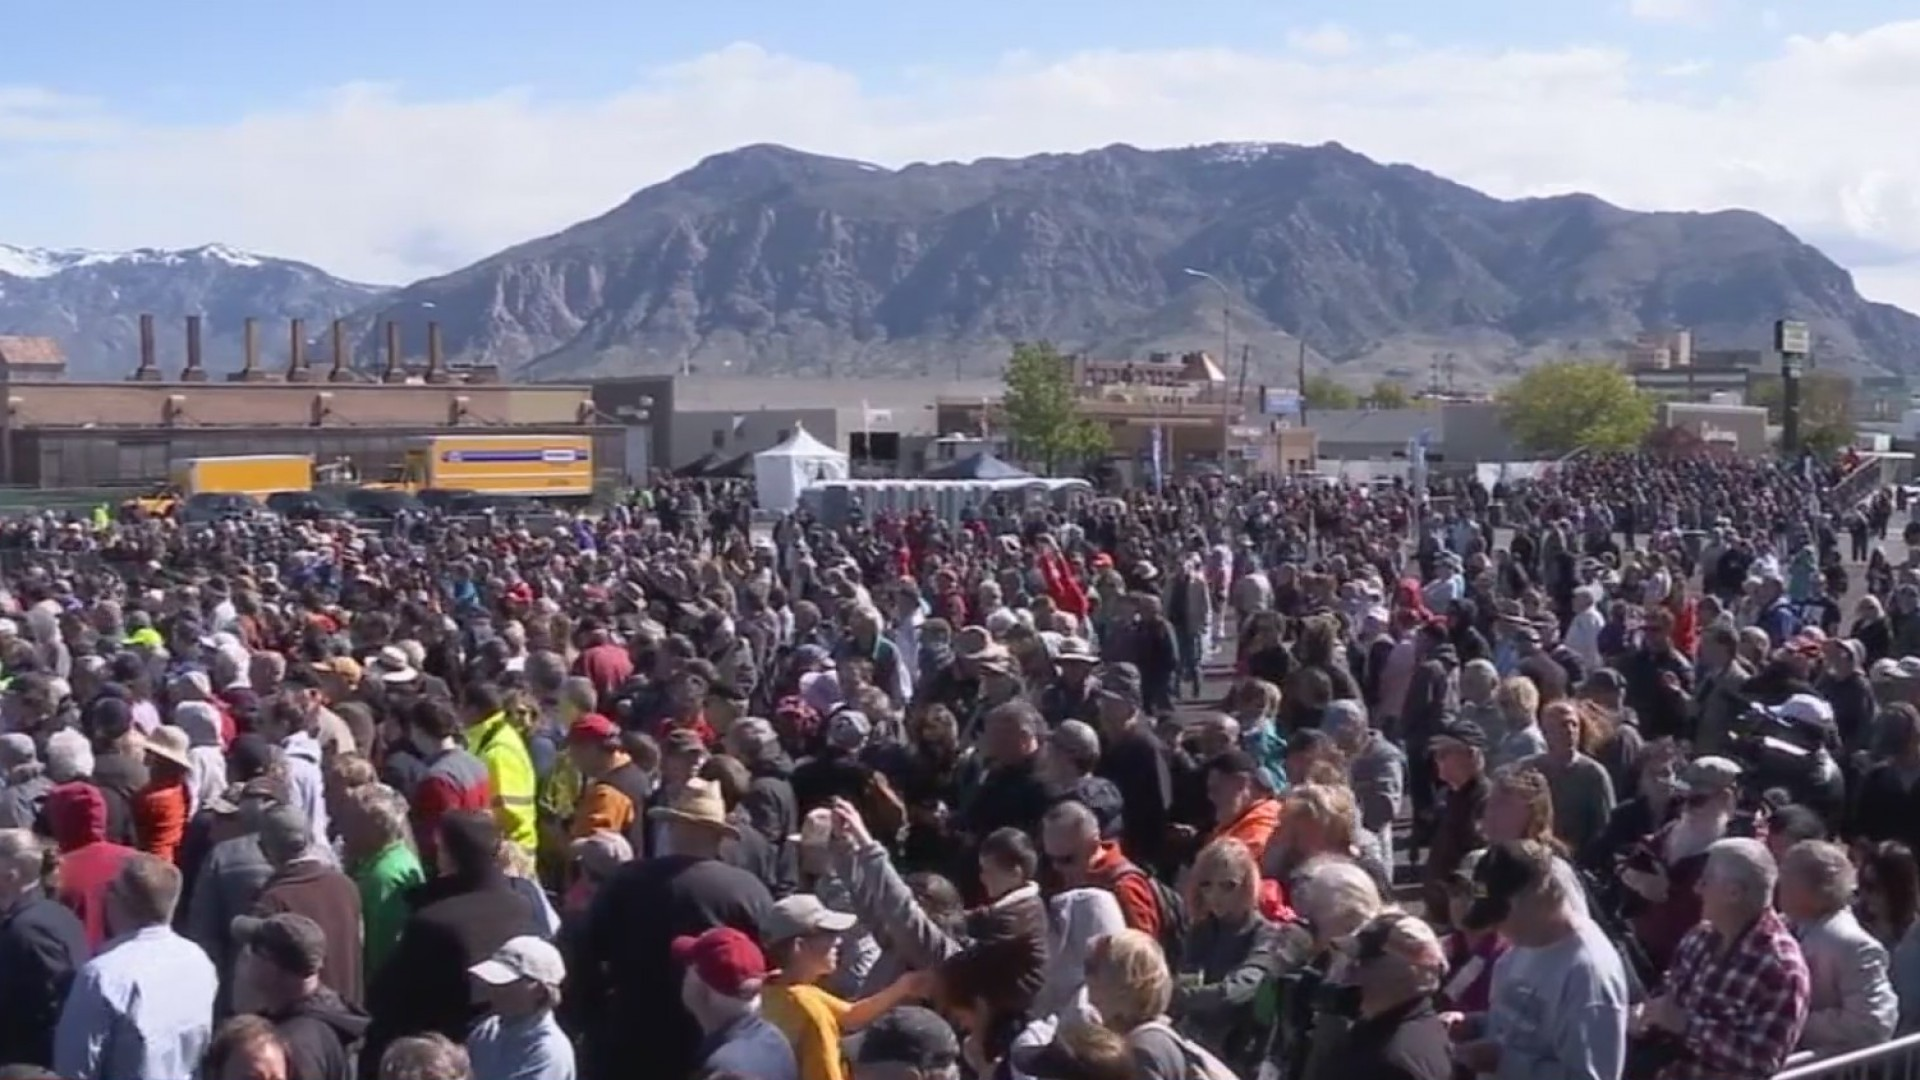 Thousands gather on eve of 150 year railroad anniversary